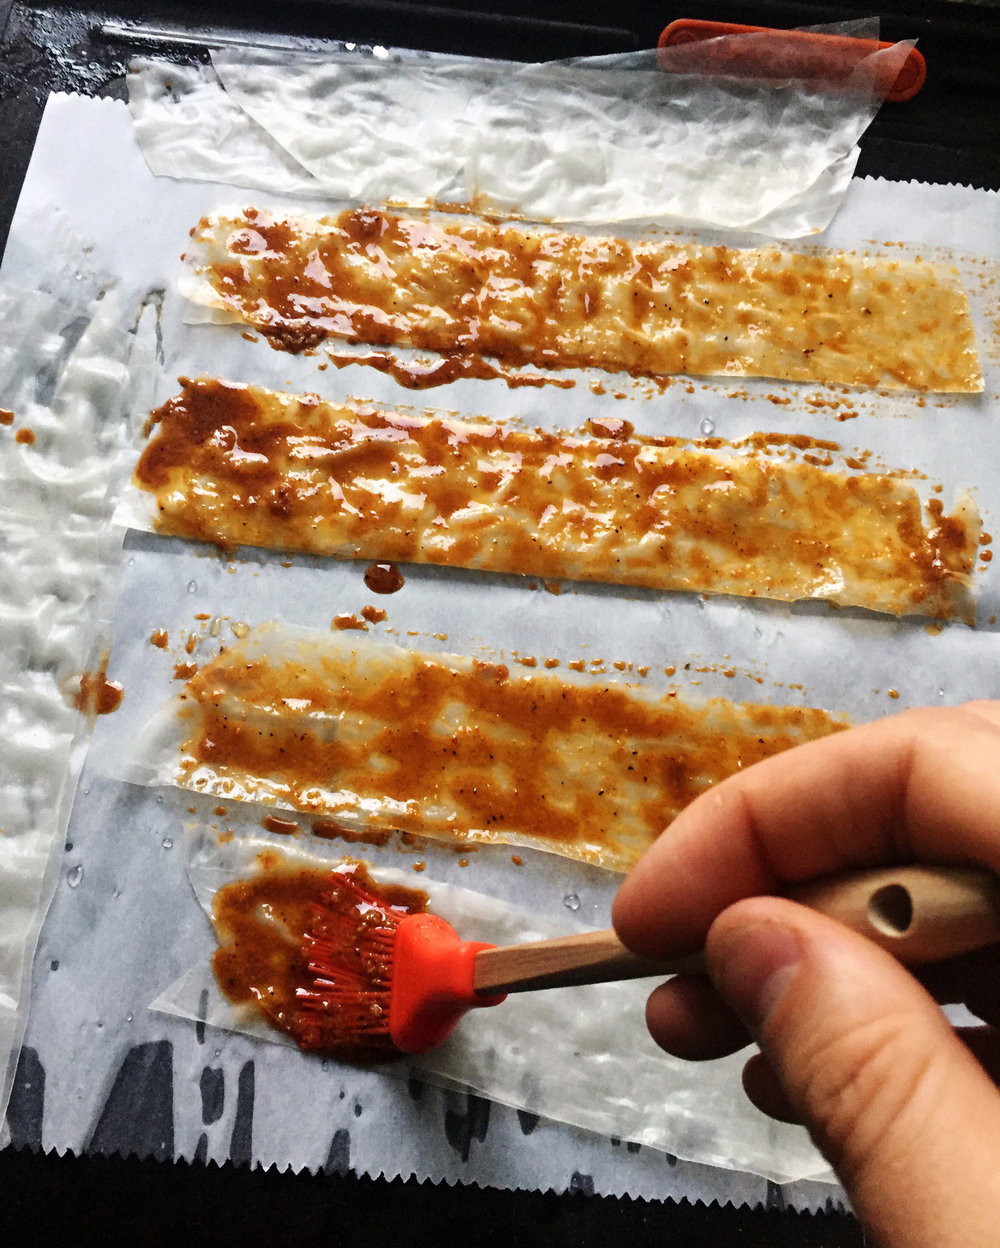 5. Using a pastry brush, slap on the marinade onto each strip. Coat well. Flip over the strips and add the marinade to the other side. Place the pans of bacon into the oven and bake at 400F for 8-9 minutes. At 6-7 minutes check it to make sure it is not burned. I keep a close eye as it can burn quickly.